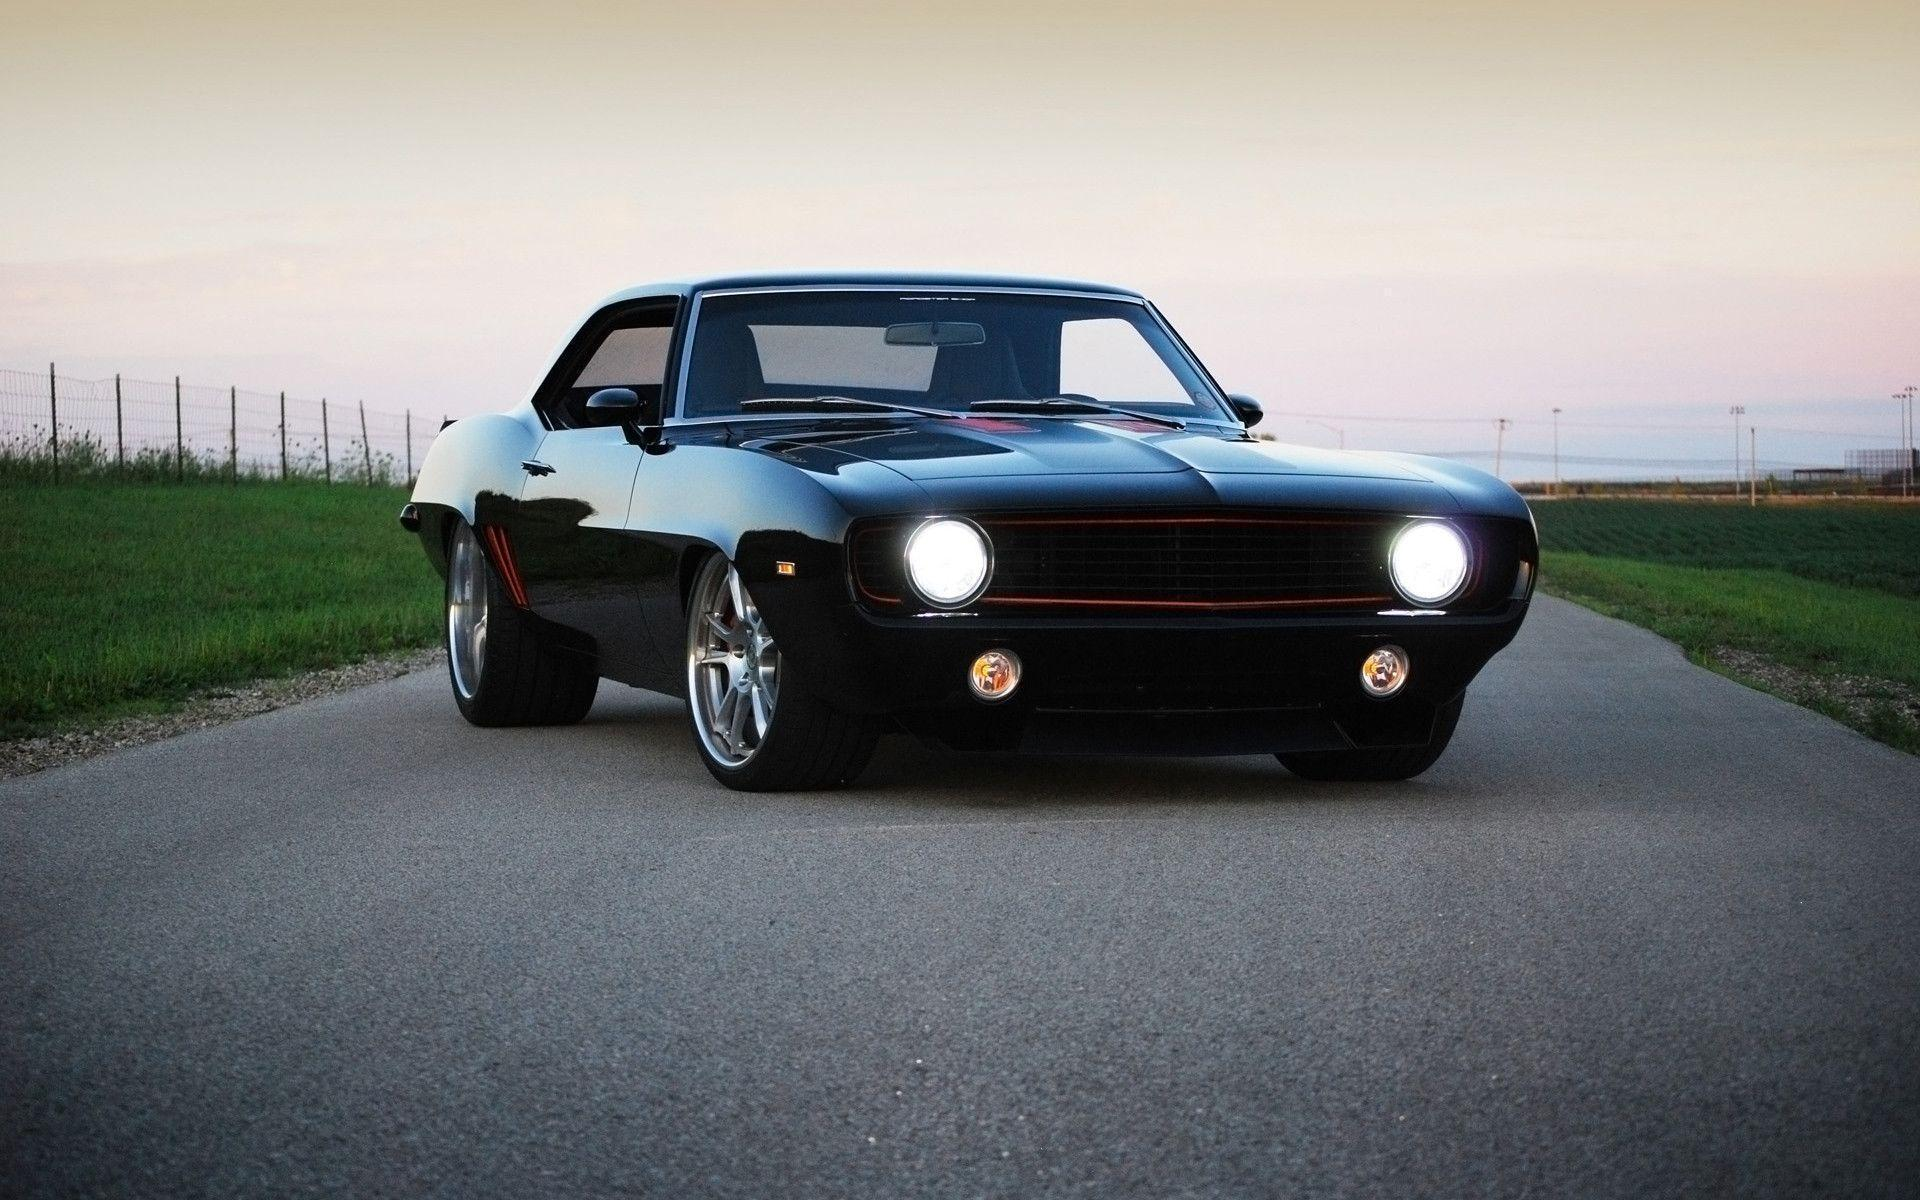 1969 Camaro Wallpapers - Wallpaper Cave